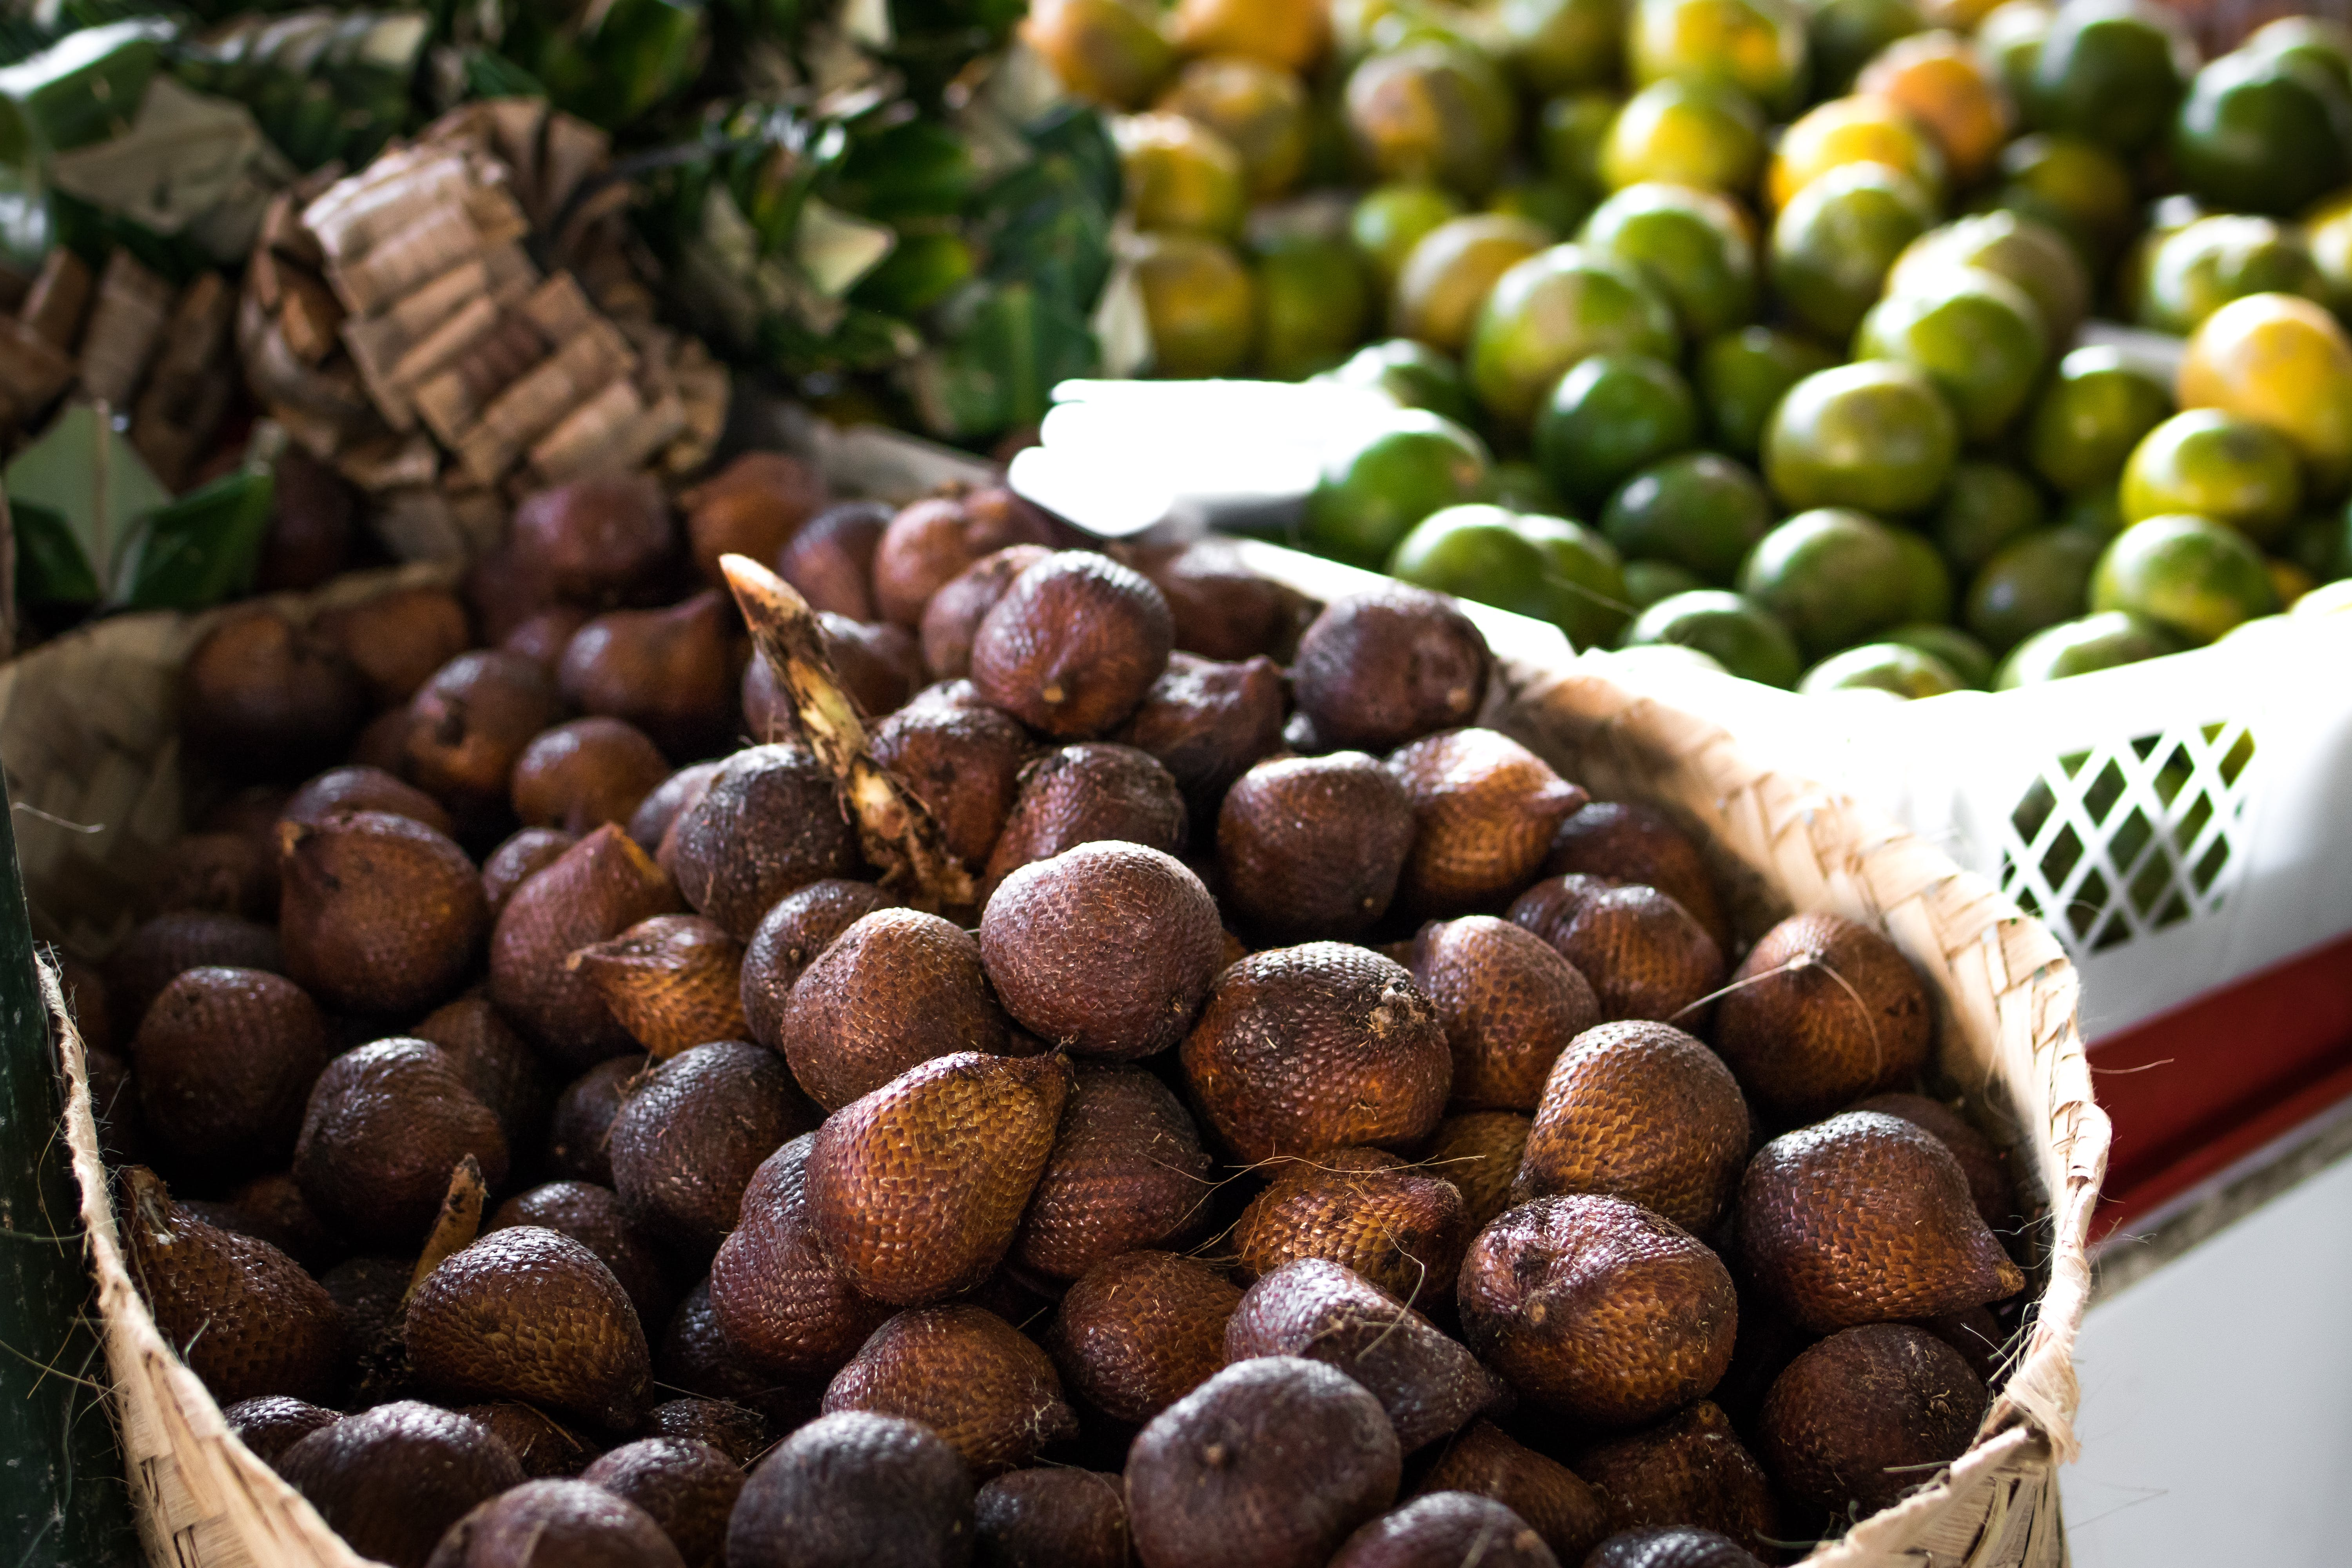 Pile of Brown Fruit With Brown Basket